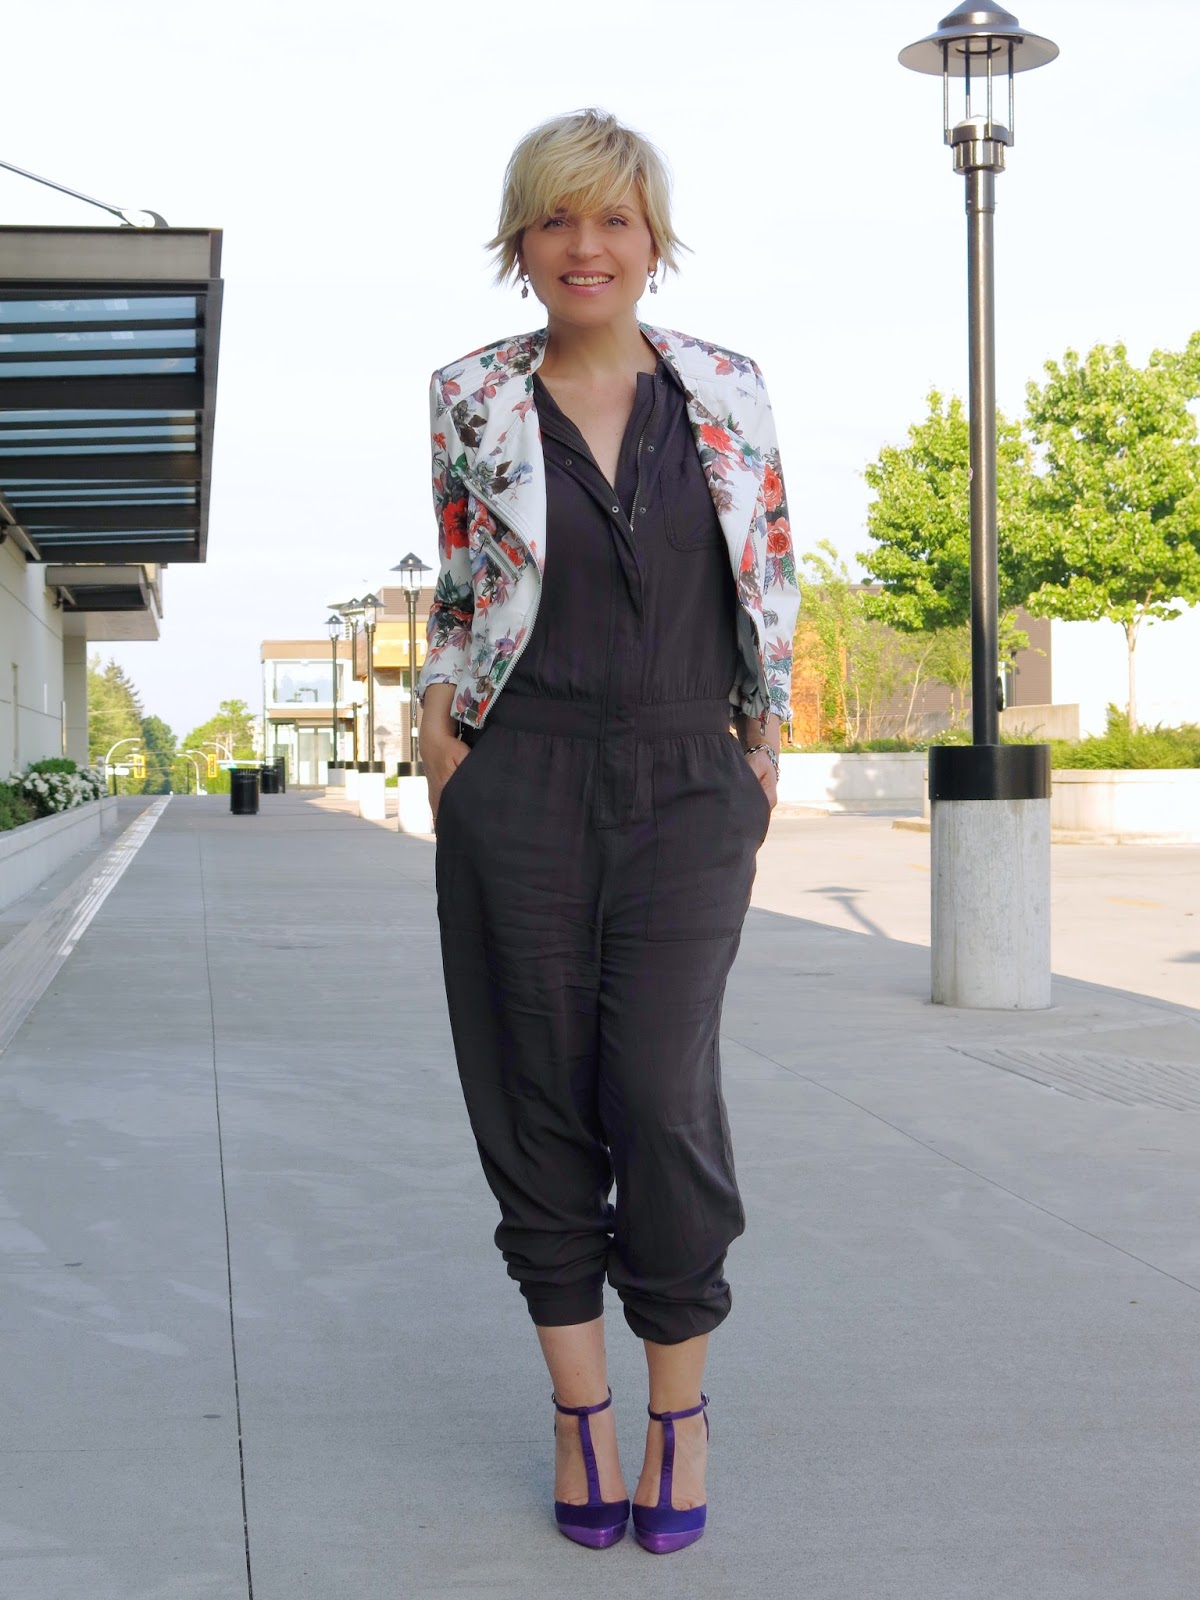 styling a jumpsuit with a floral moto jacket and purple t-strap shoes